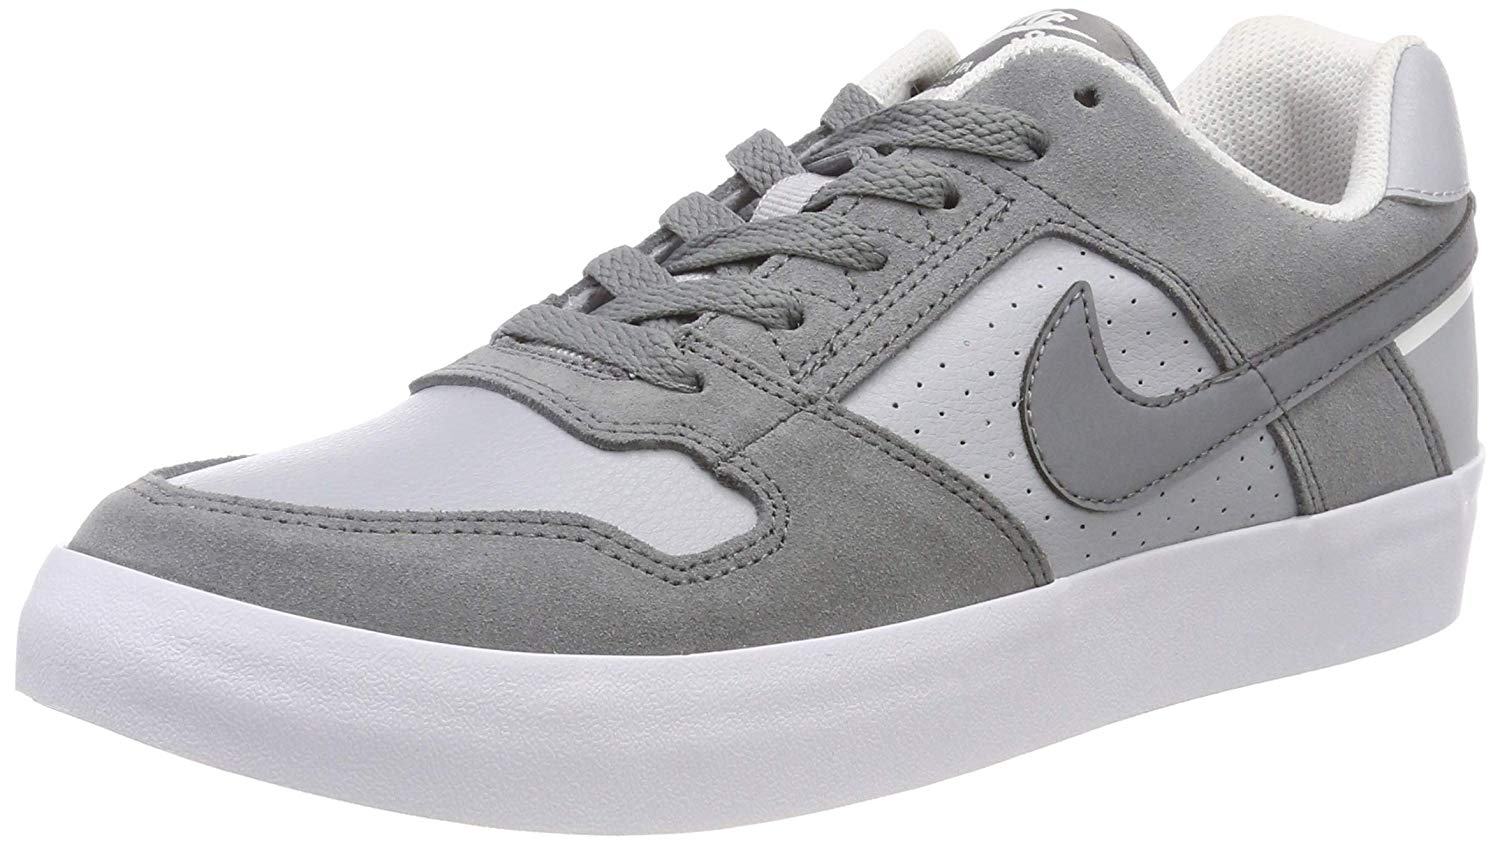 d545b7b9790 Get Quotations · Nike Mens SB Delta Force Vulc Cool Grey Wolf Grey White  Size 10